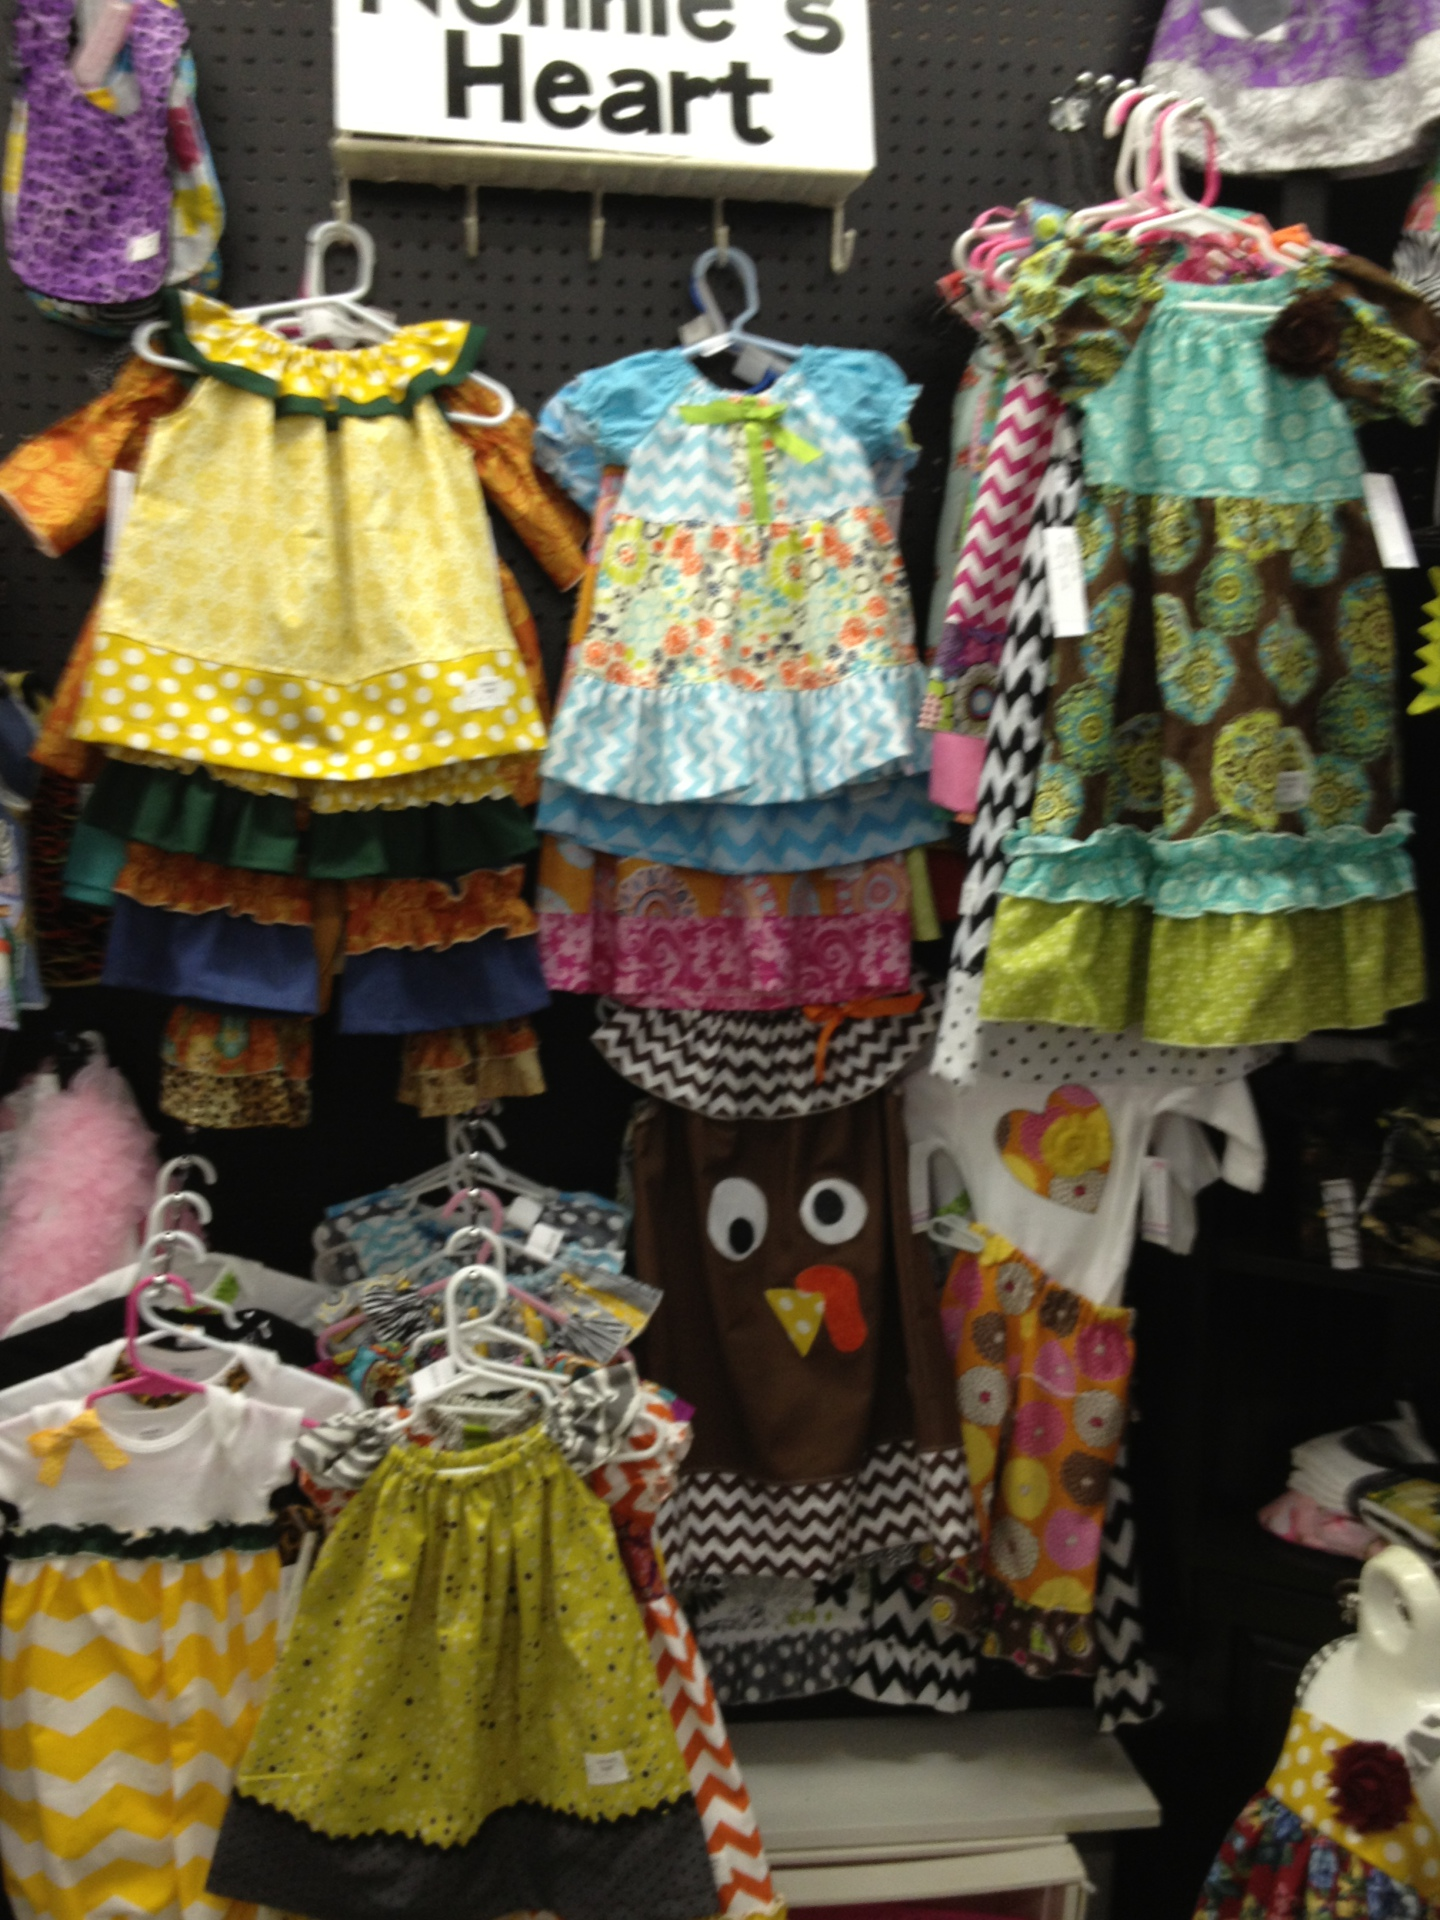 Voted #1 Children's Clothes Store in Waco